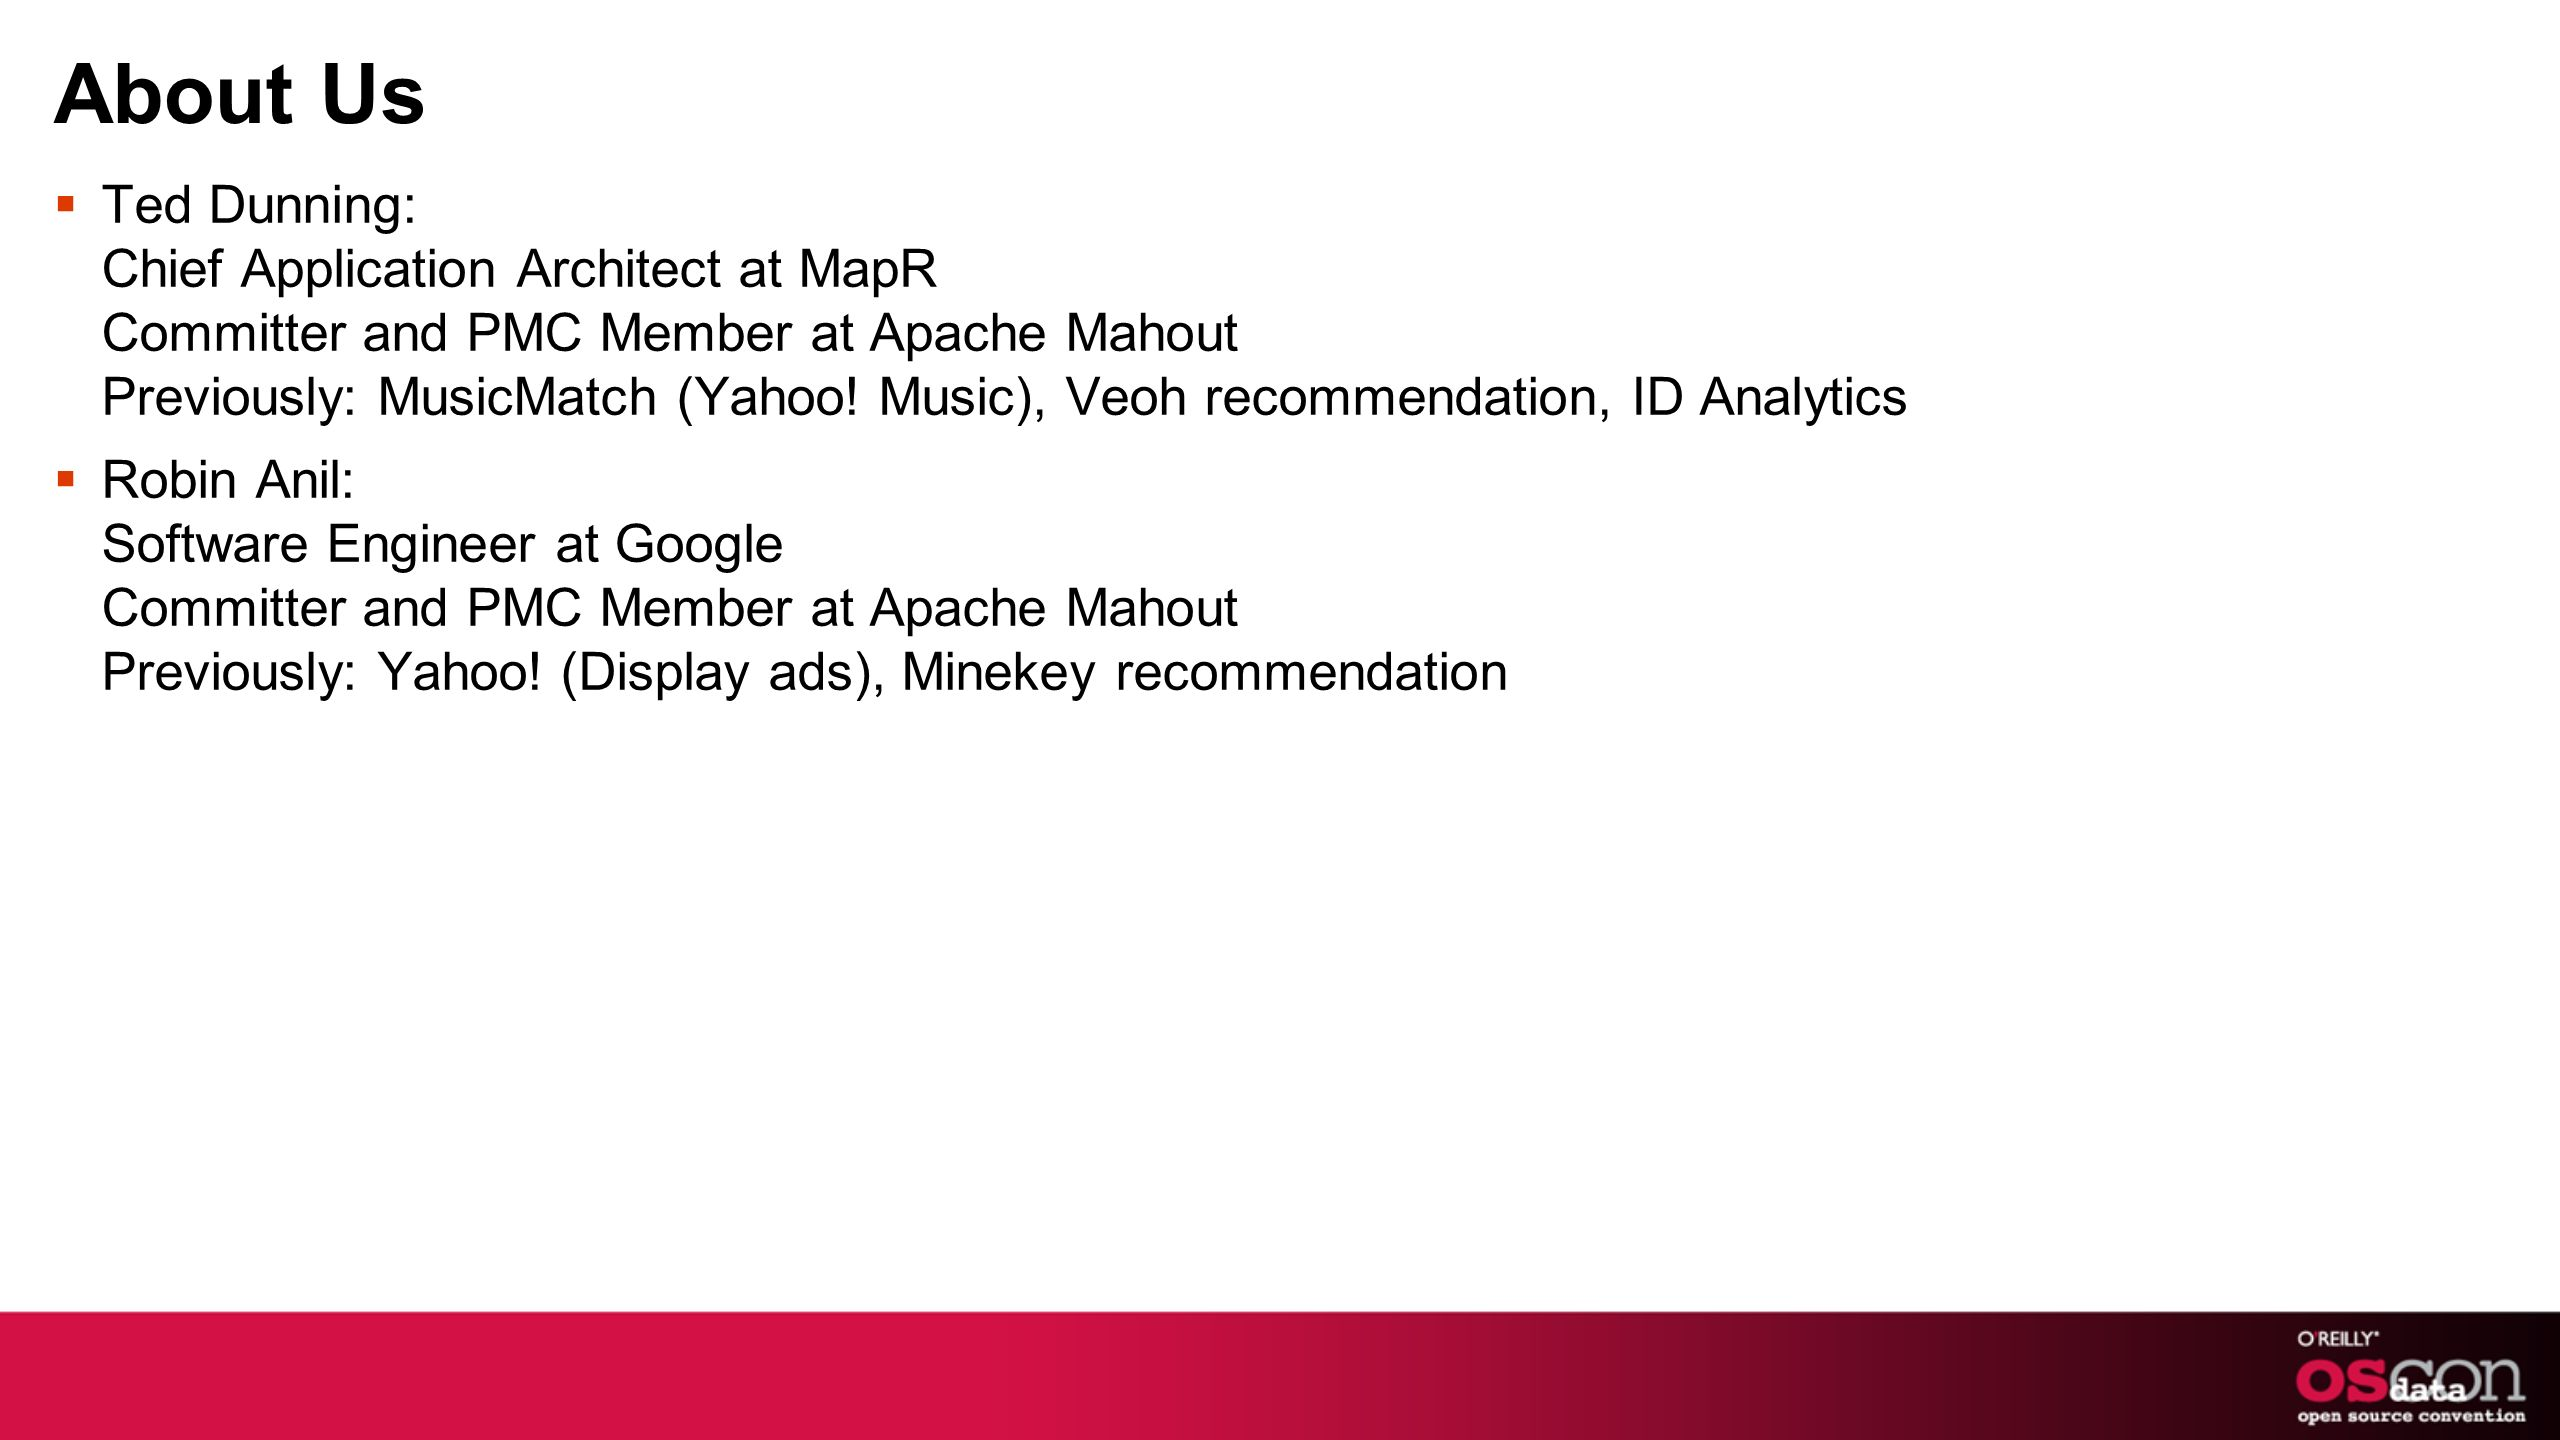 About Us Ted Dunning: Chief Application Architect at MapR Committer and PMC Member at Apache Mahout Previously: MusicMatch (Yahoo! Music), Veoh recomm